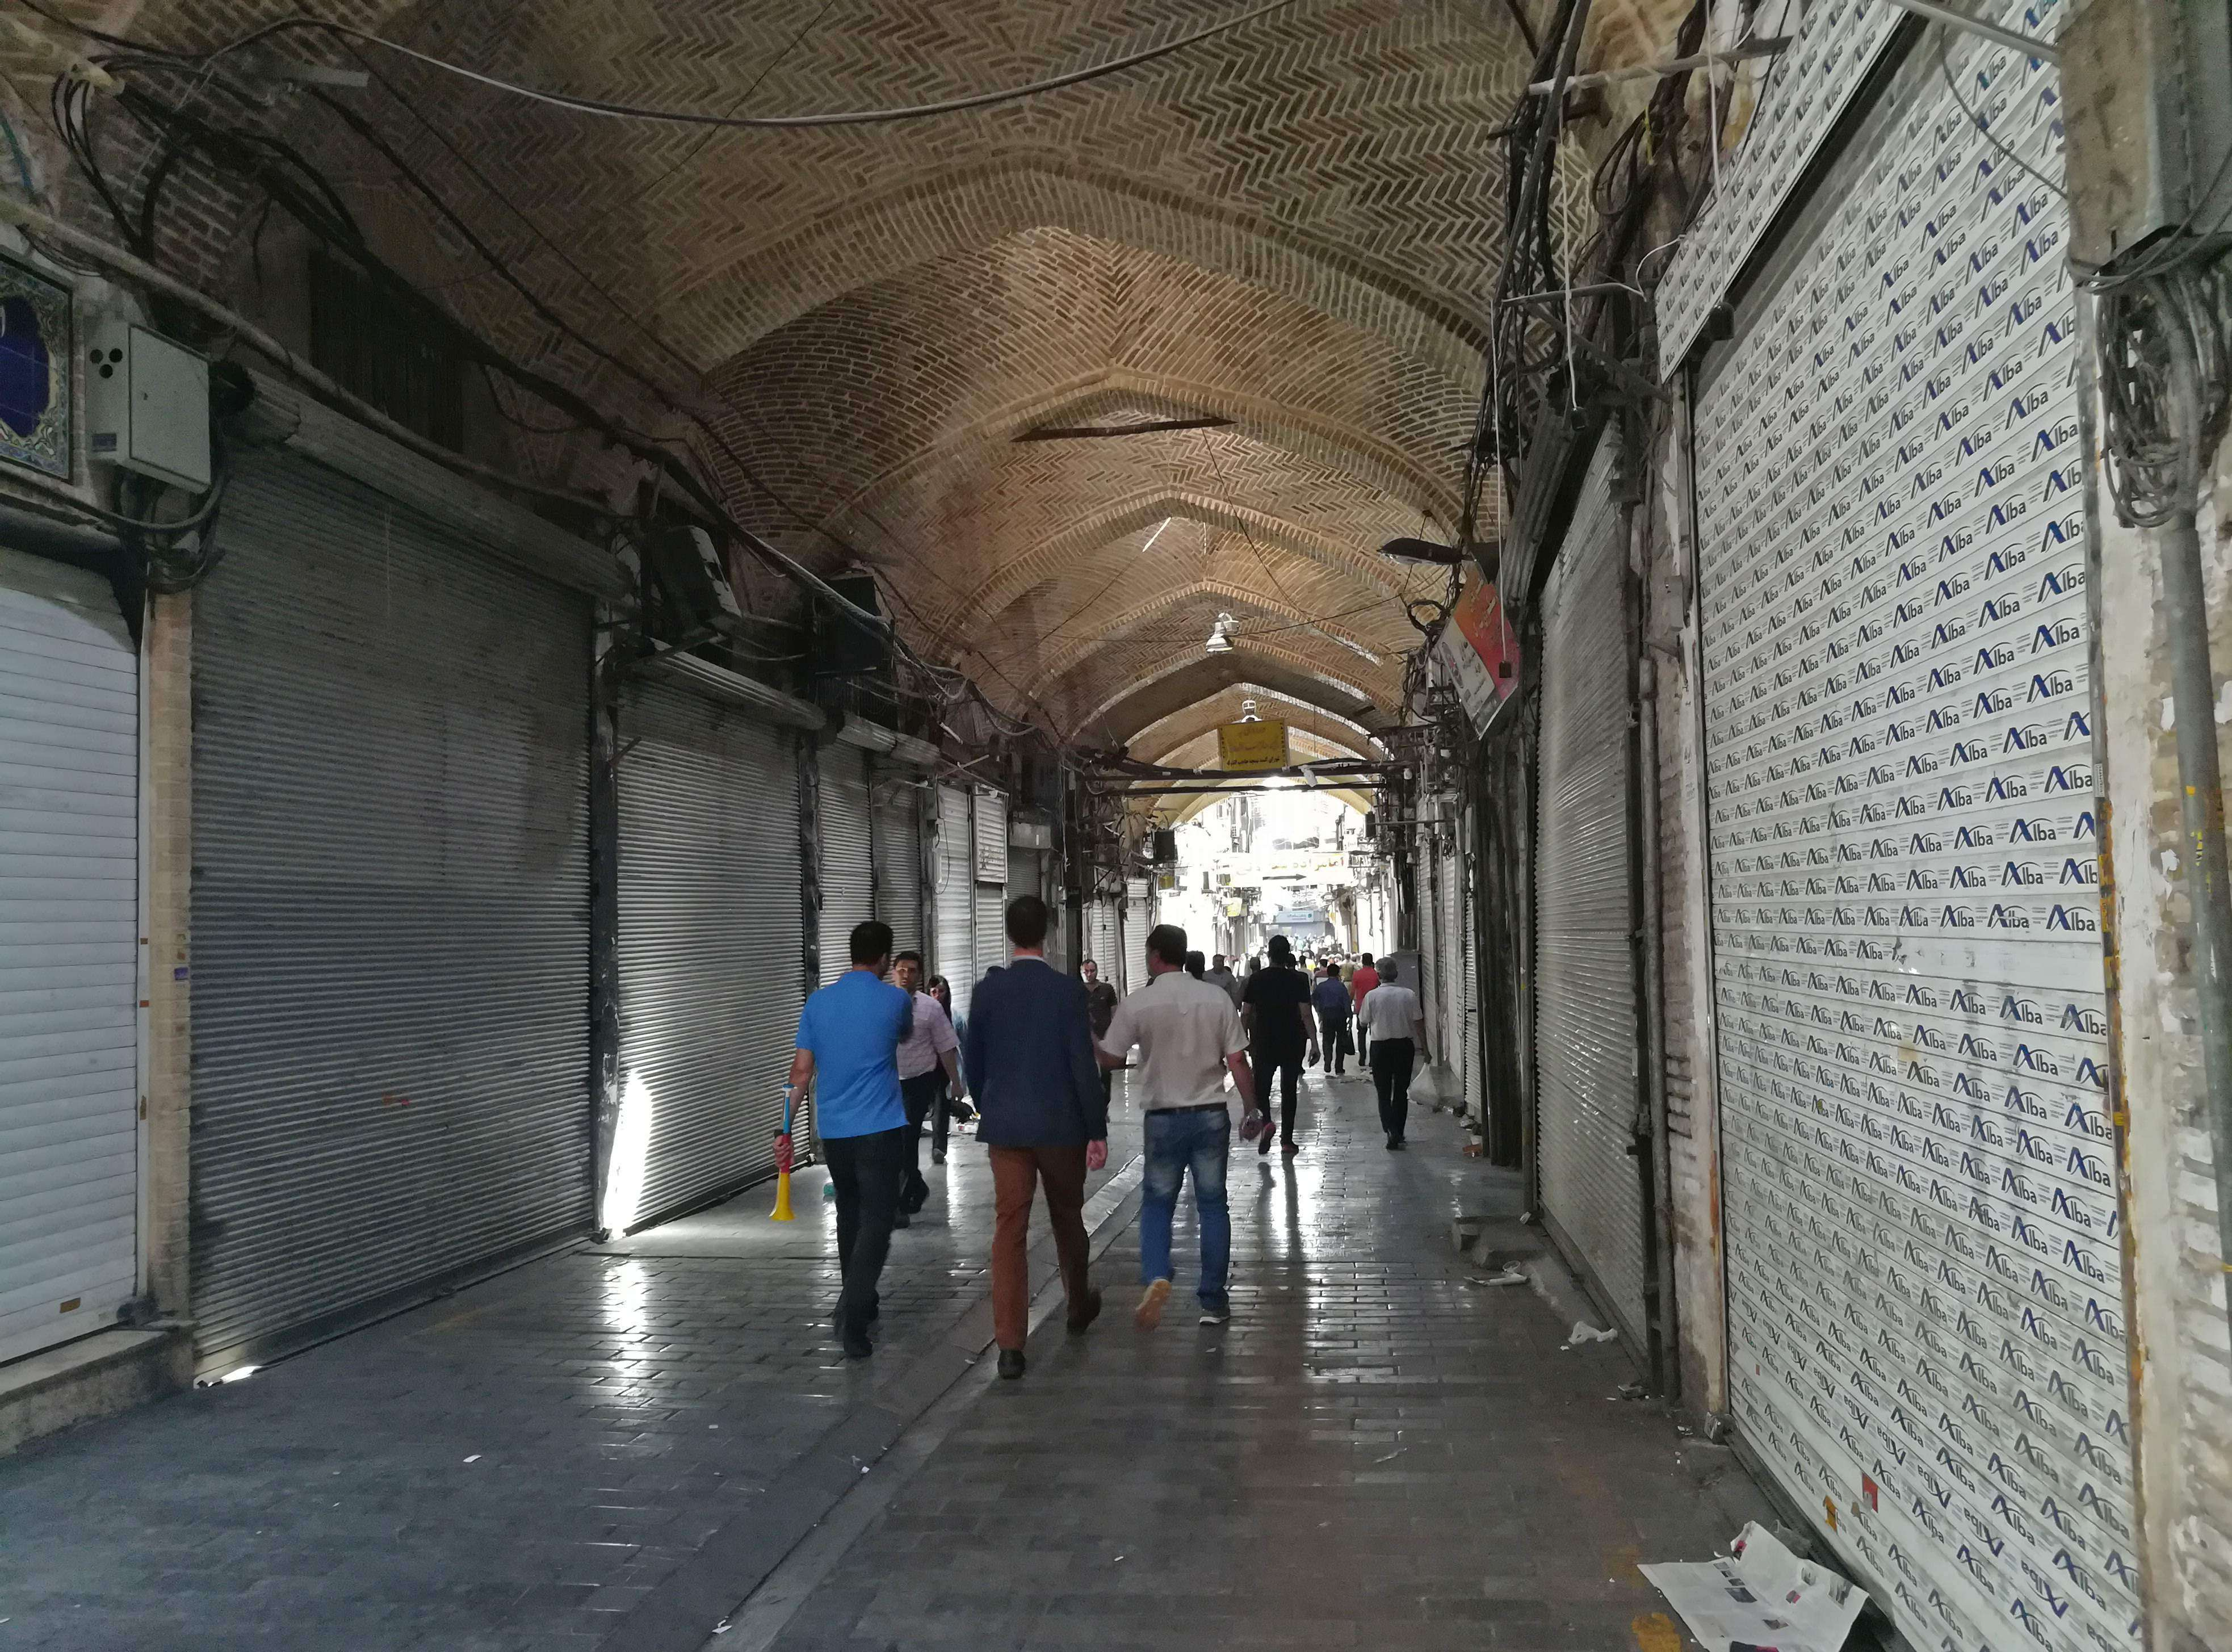 Iranians walk through the old grand bazaar where shops are closed after a protest, in Tehran, on June 25. (AFP)